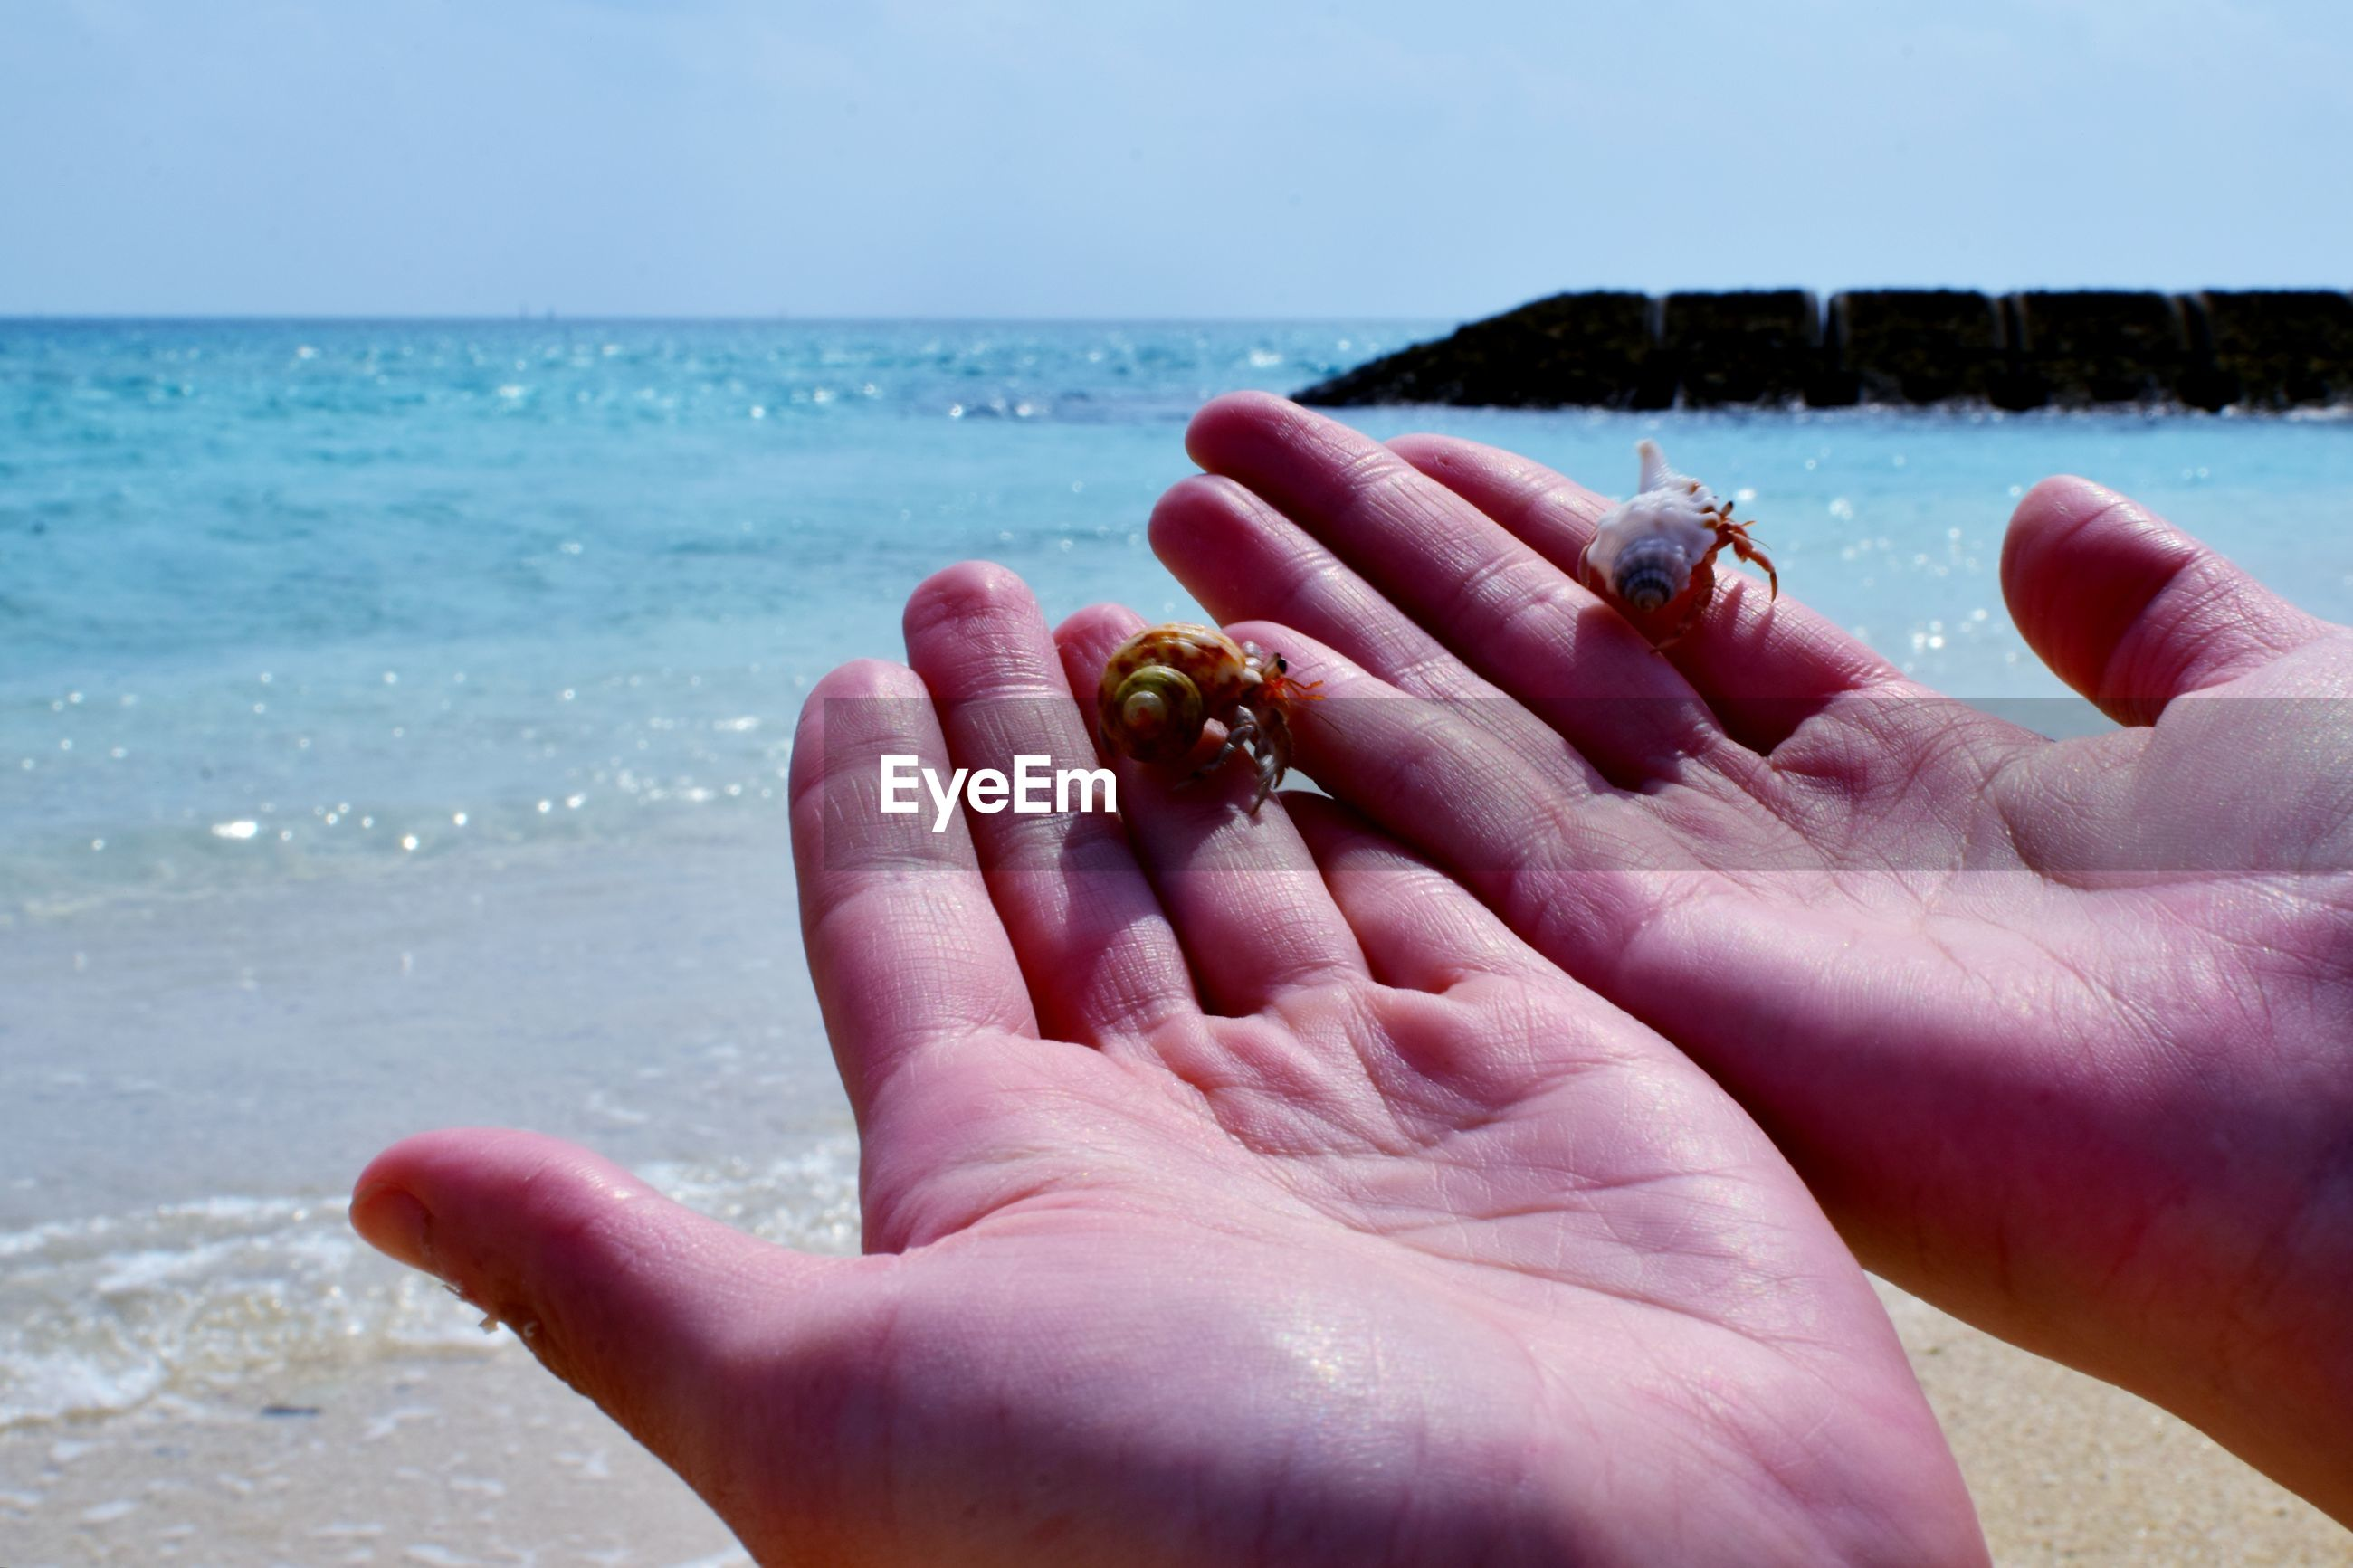 Cropped image of hands on sea shore